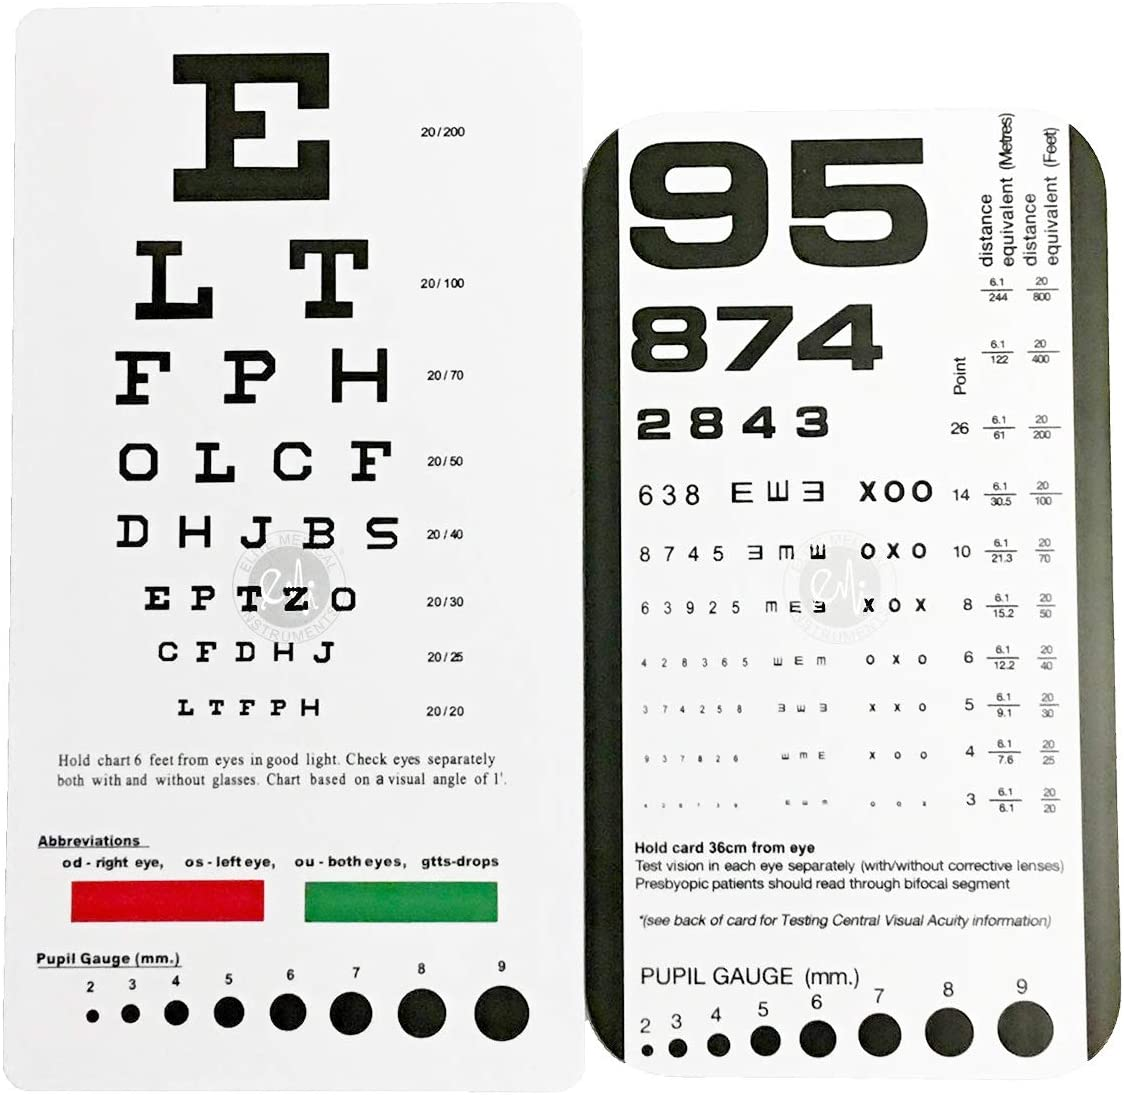 EMI Snellen Pocket Eye Chart EC-PSN